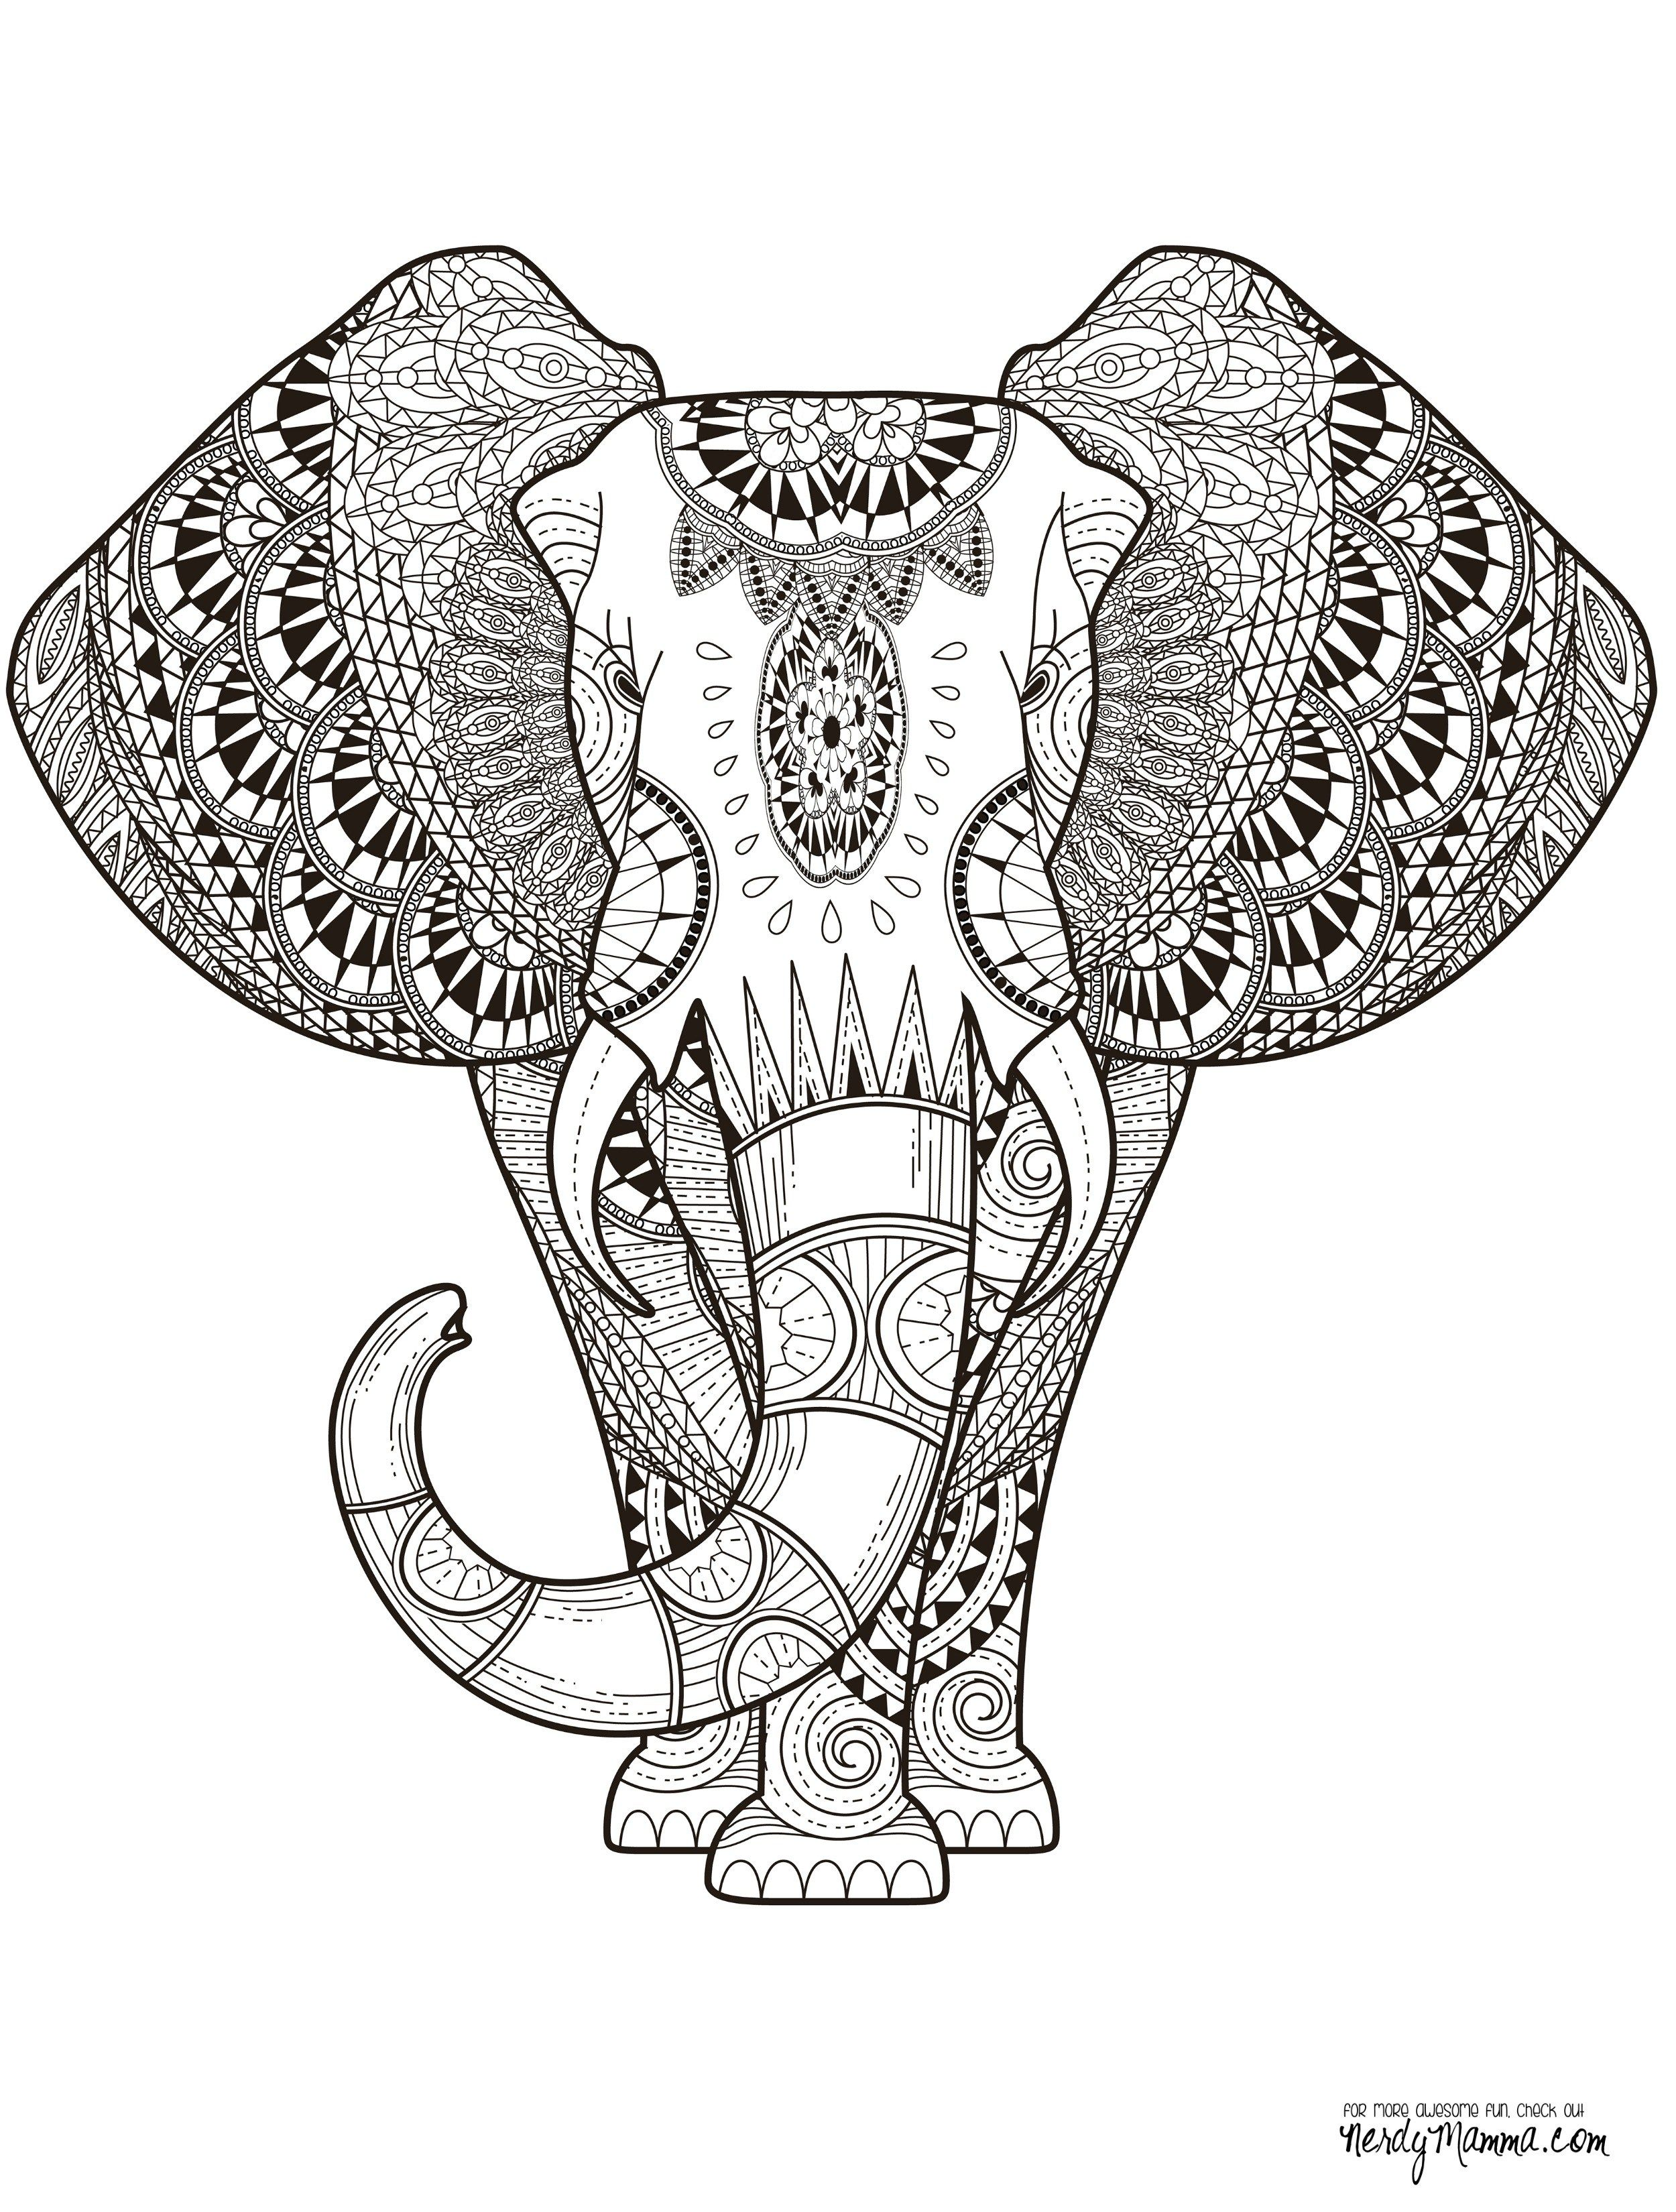 Elephant Abstract Doodle Zentangle Paisley Coloring pages ...Detailed Mandala Coloring Pages For Adults